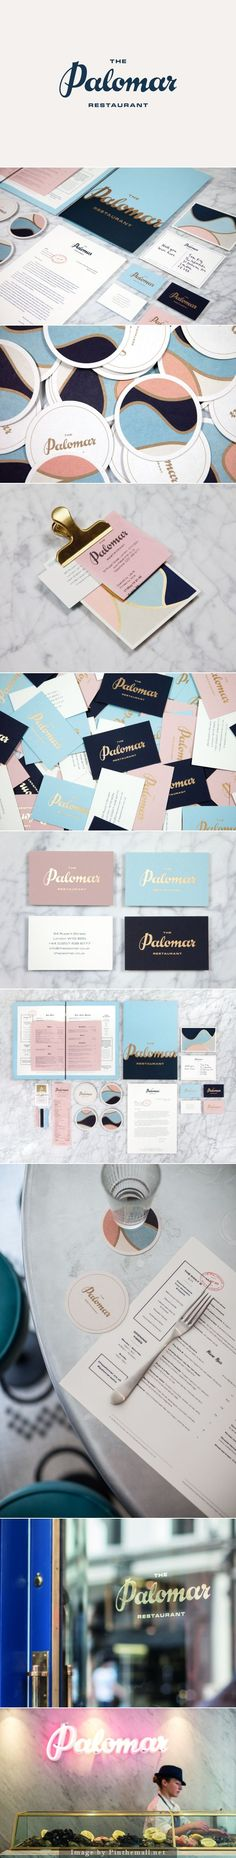 Palomar restaurant | by Here